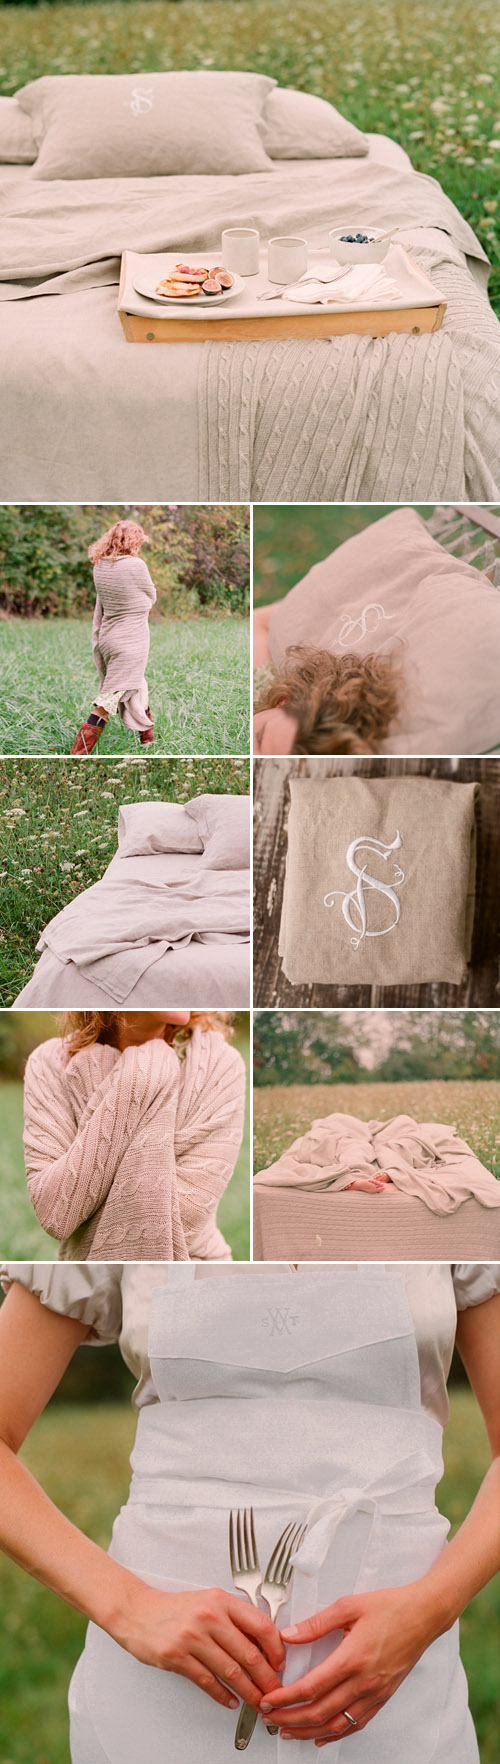 monogrammed bed linens and home accessories from Sarah Drake, images by Elizabeth Messina